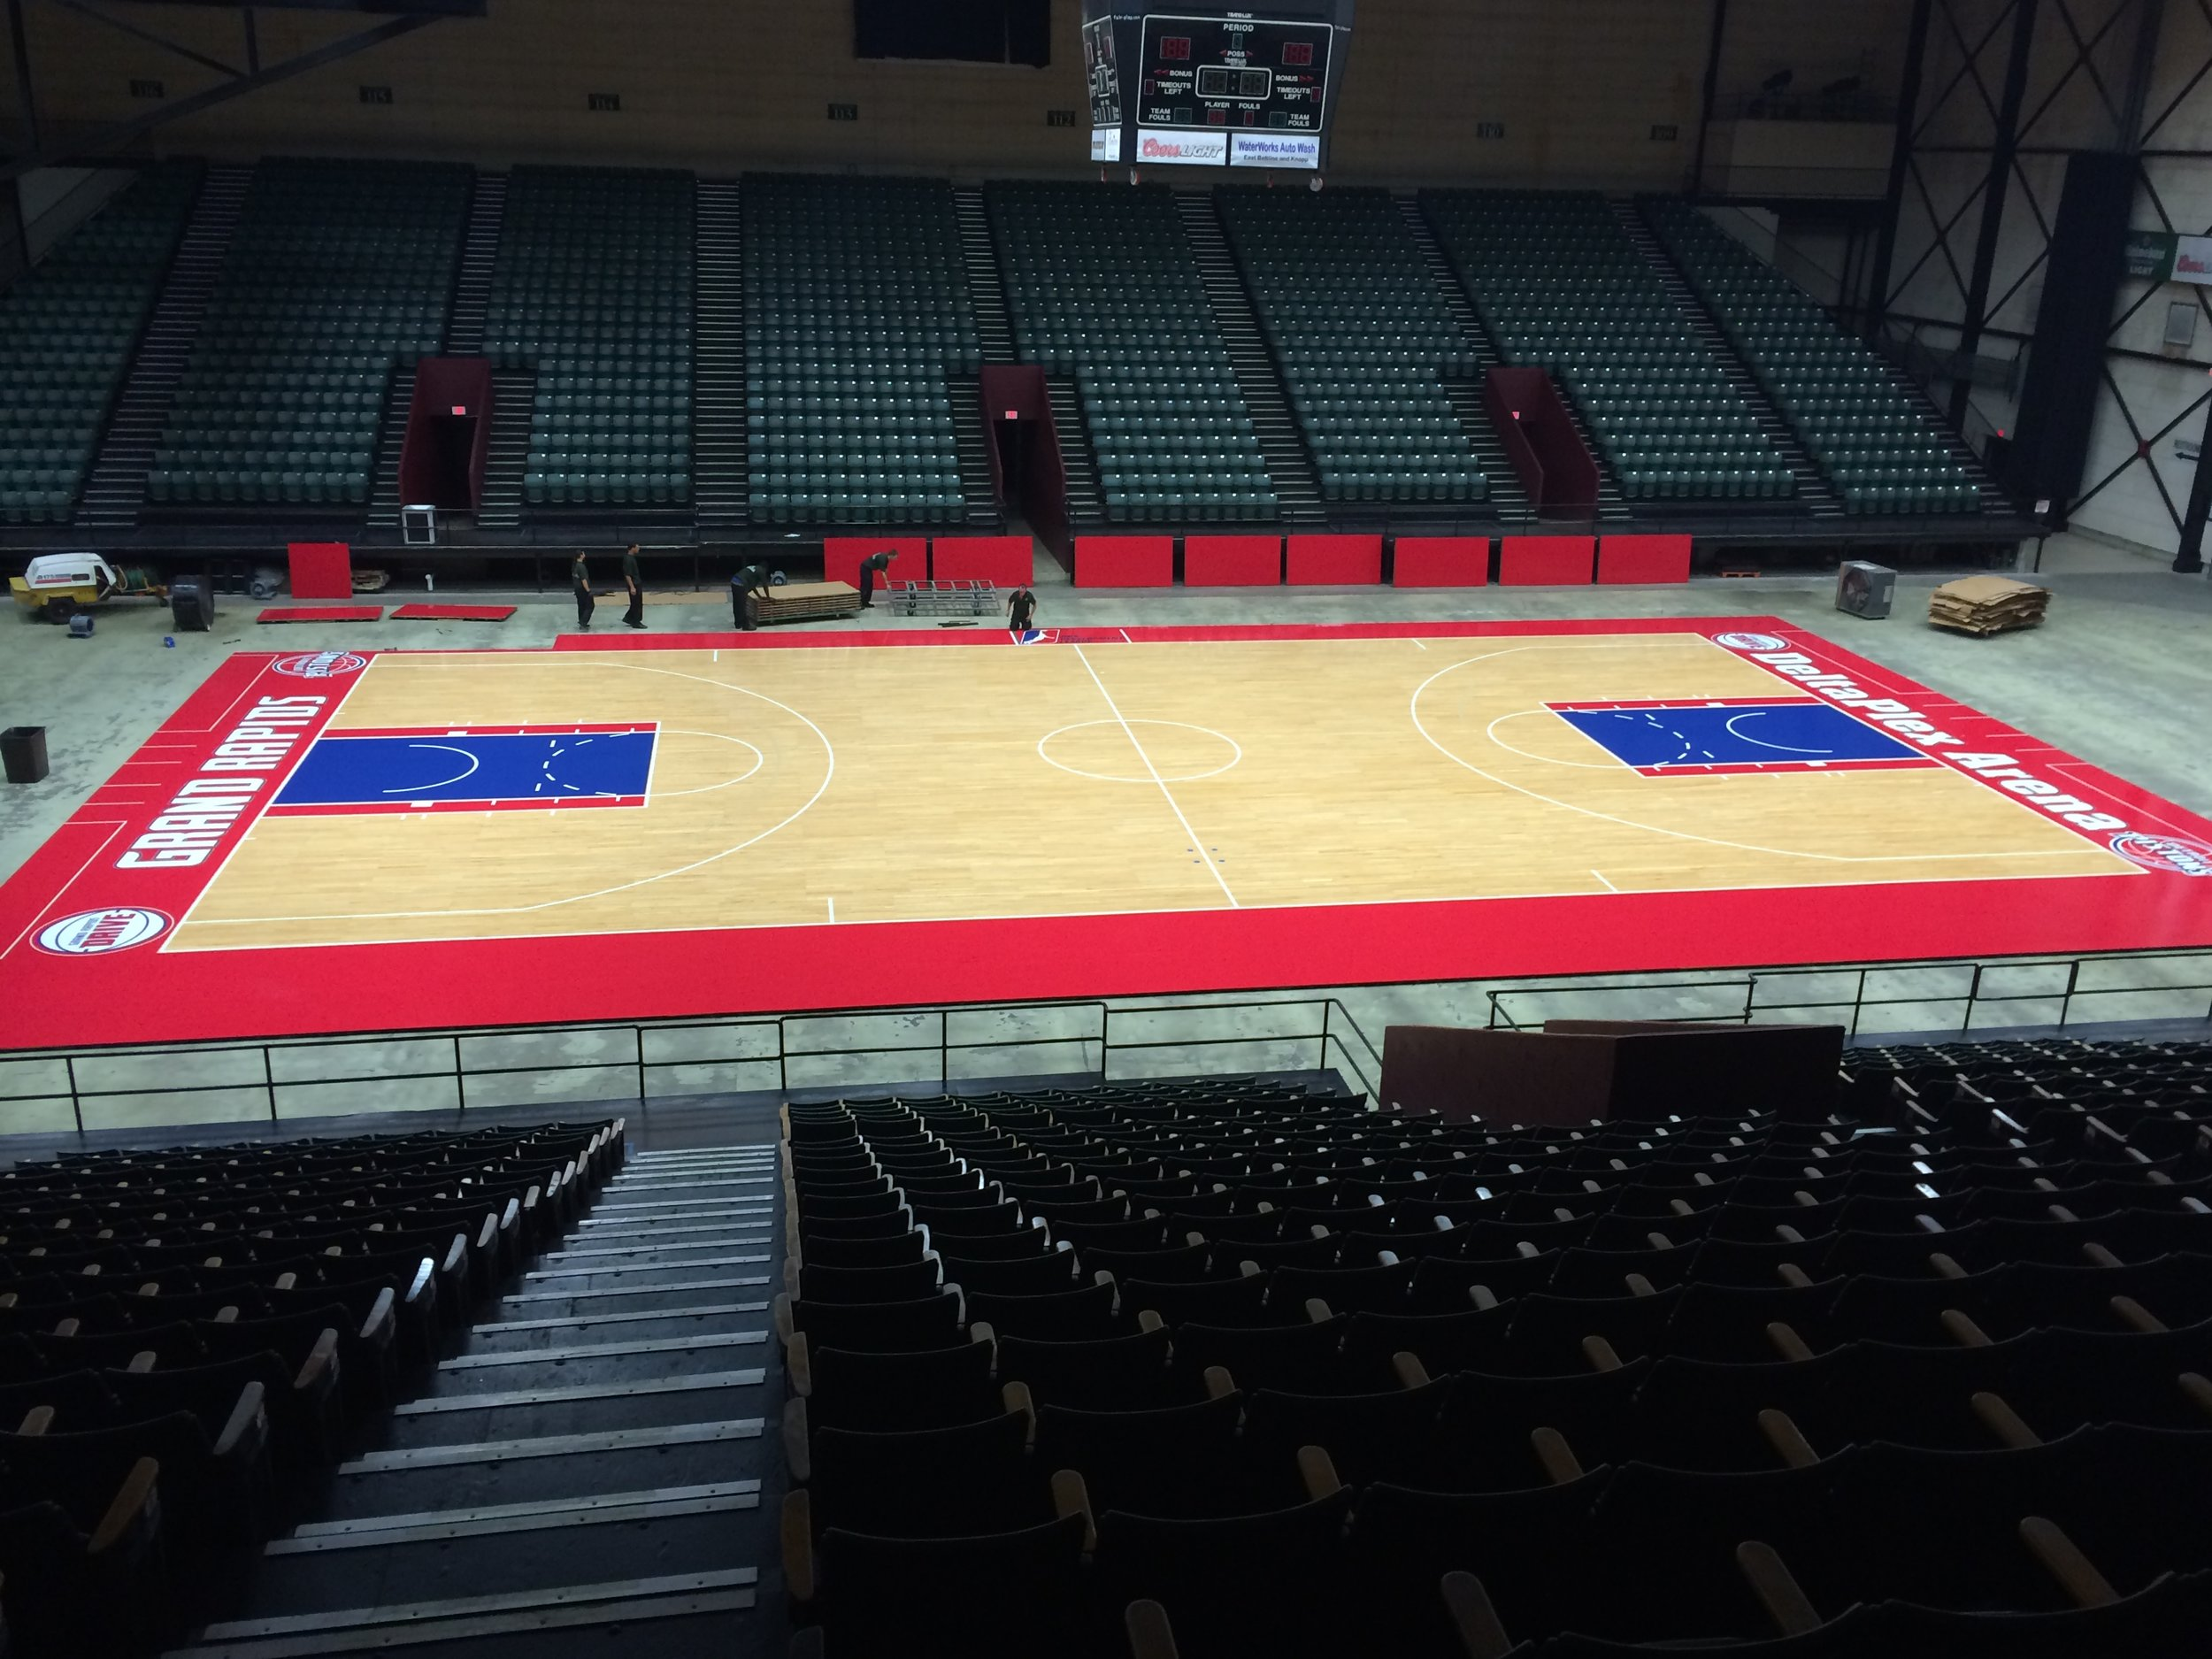 Grand Rapids Drive - Finished with game lines and boarder.